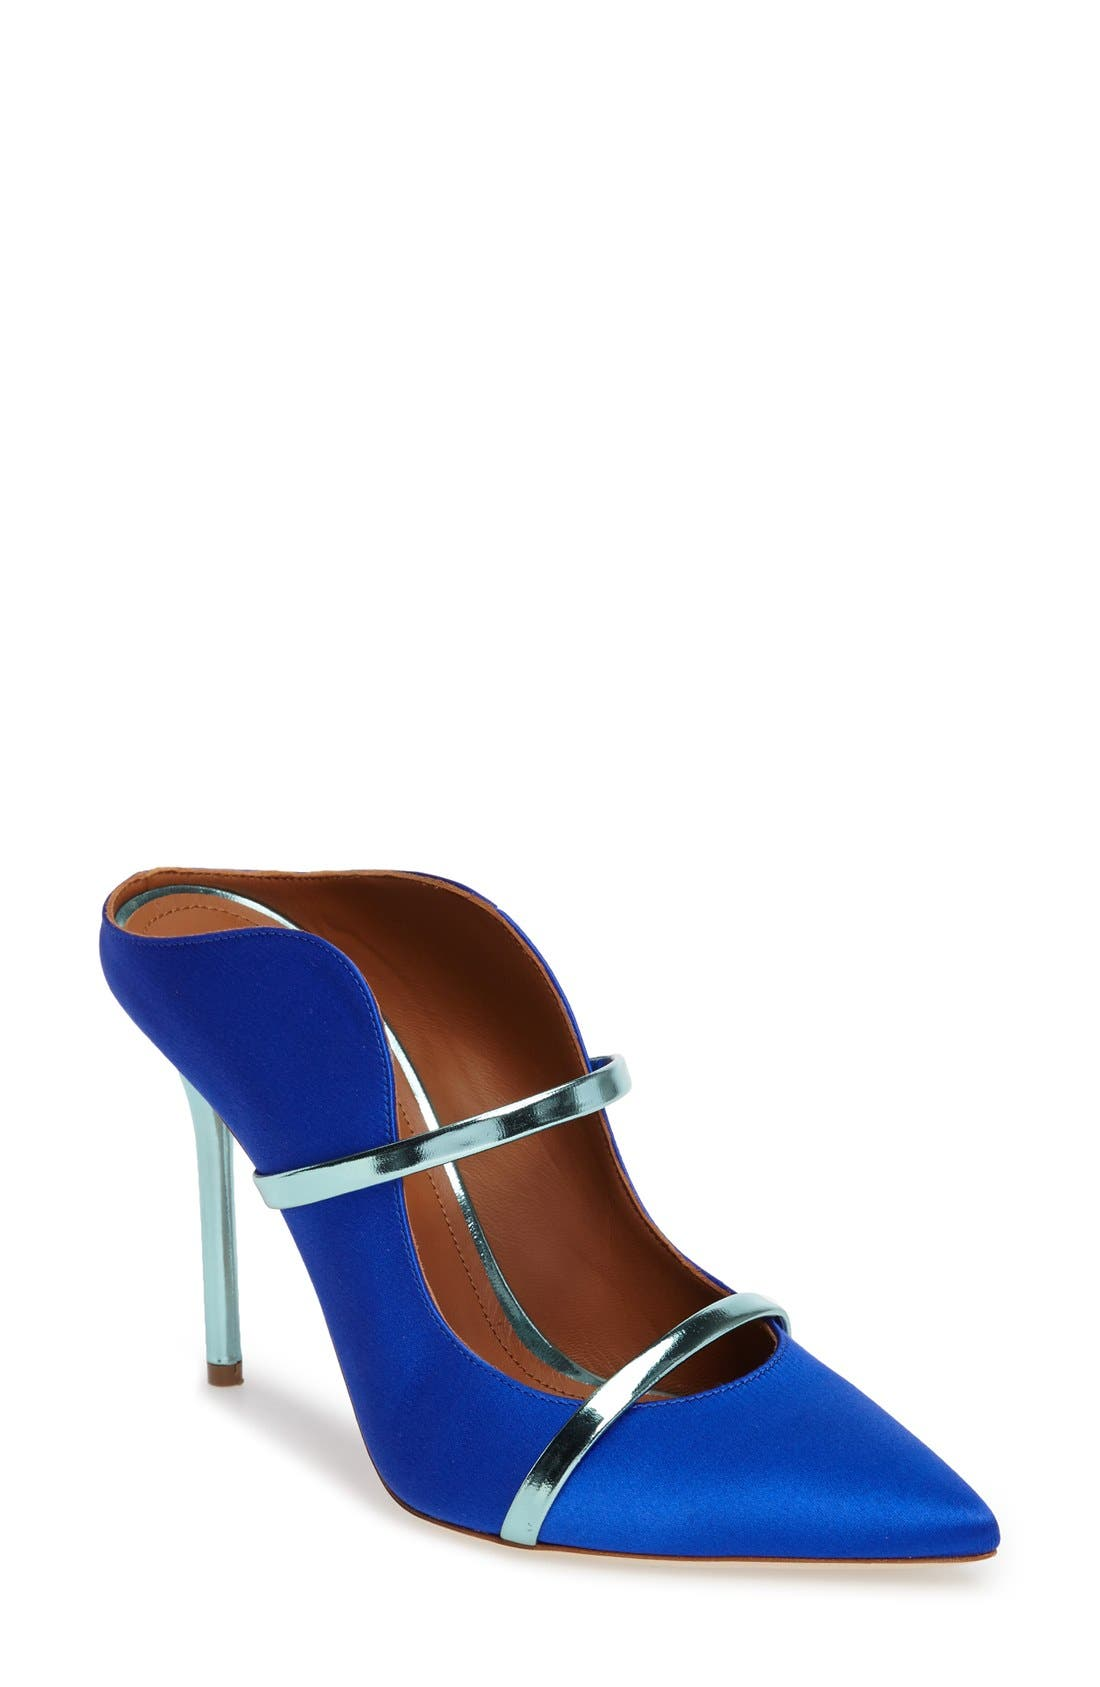 Alternate Image 1 Selected - Malone Souliers 'Maureen' Pointy Toe Mule (Women)